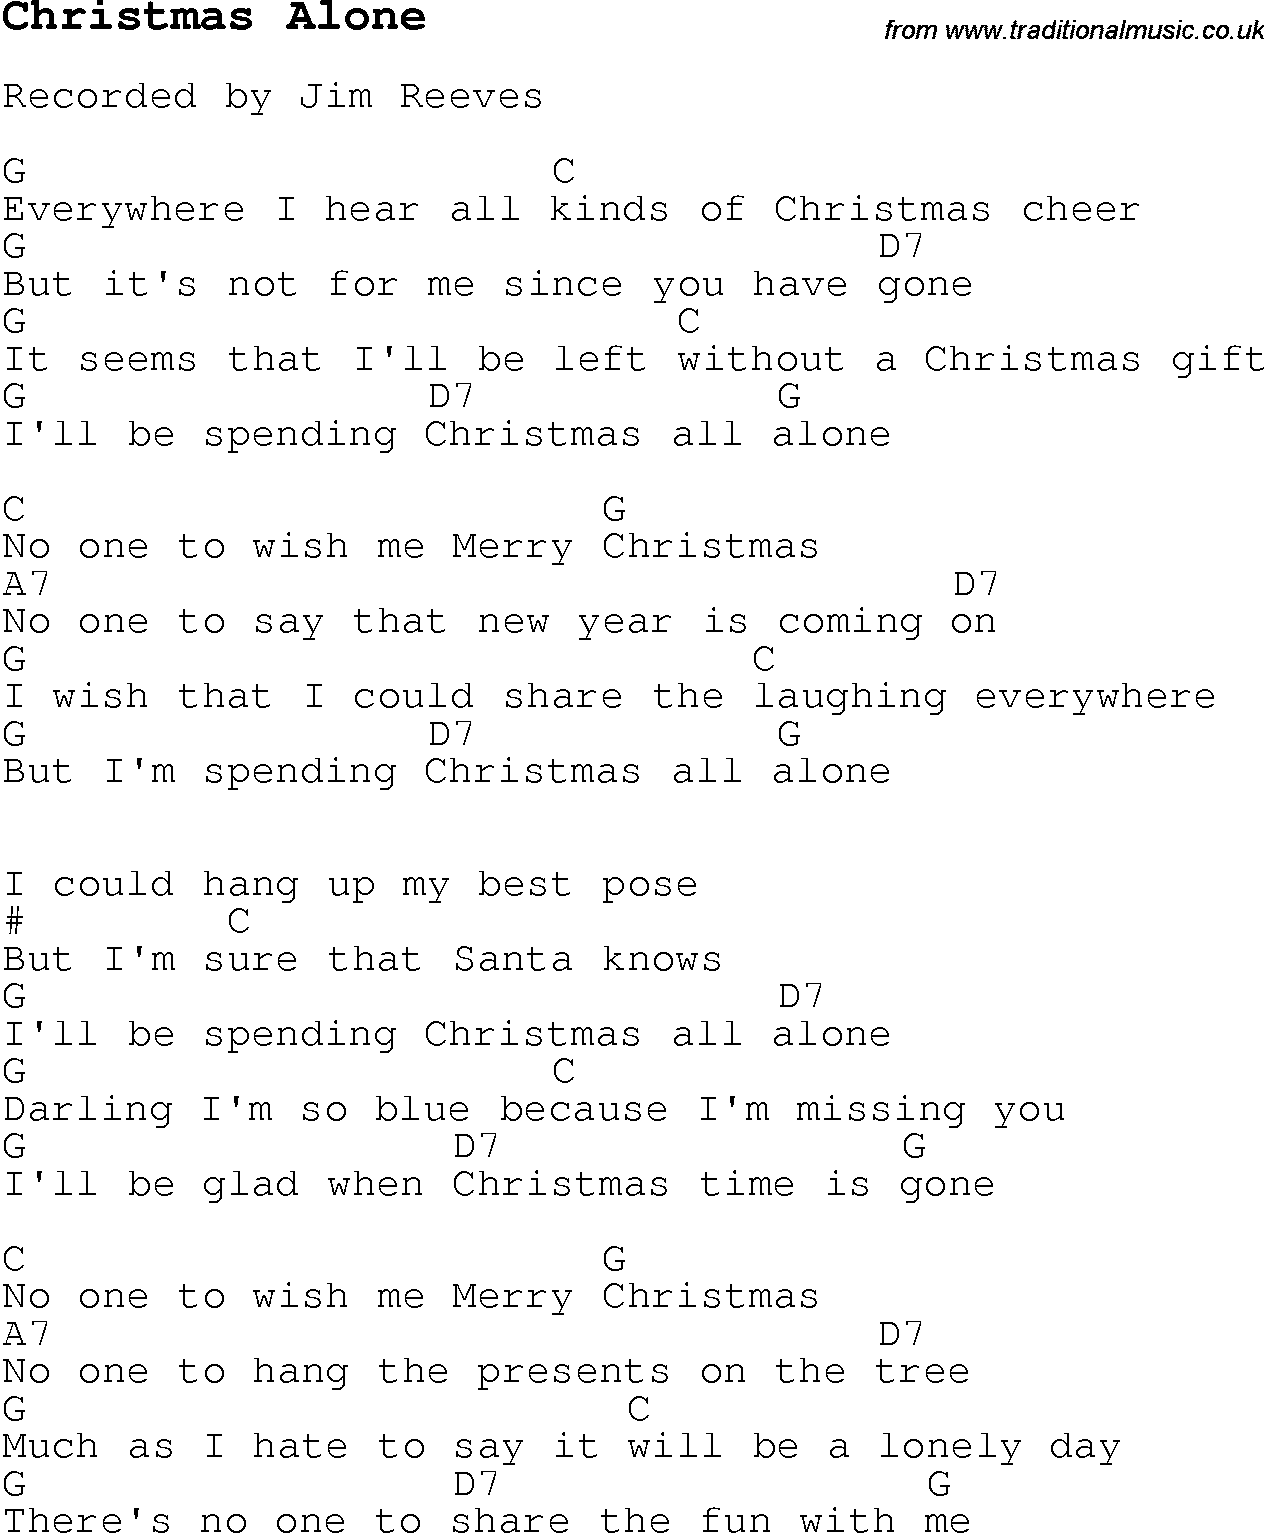 Christmas Carol/Song lyrics with chords for Christmas Alone